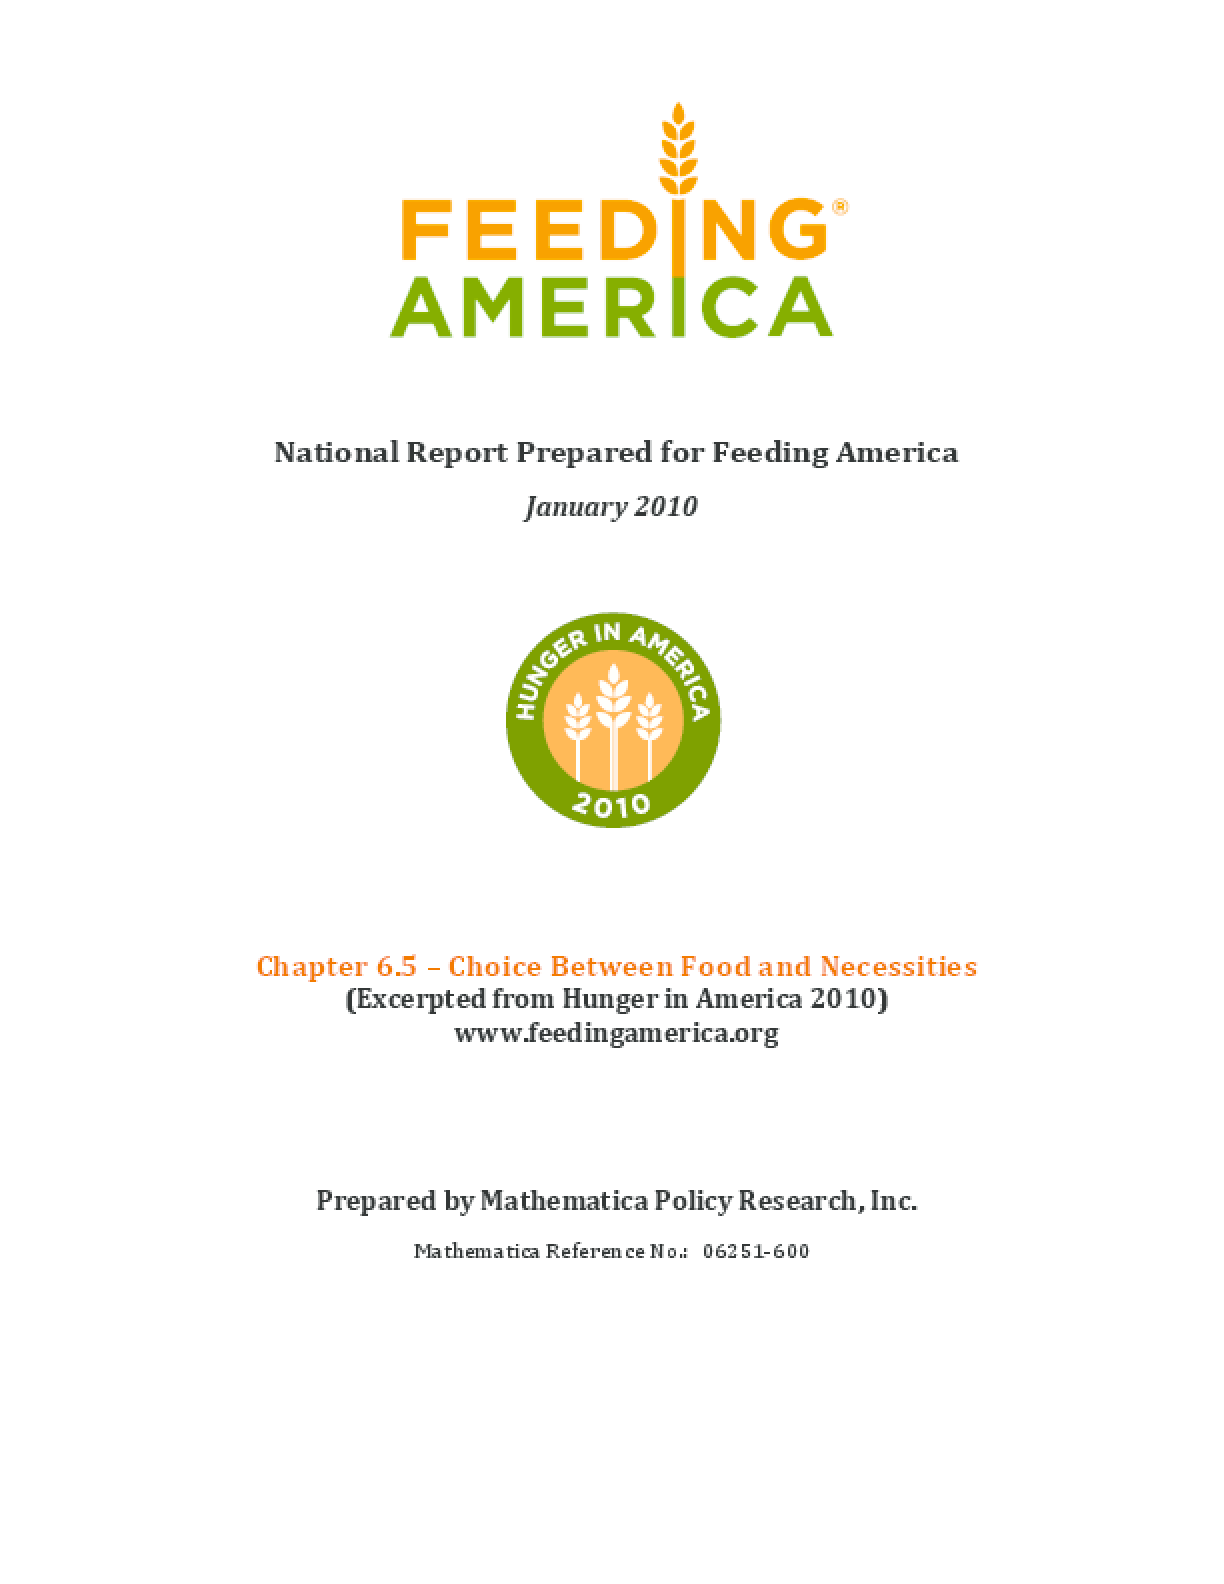 Choices Between Food and Other Necessities Made by Feeding America Client Households